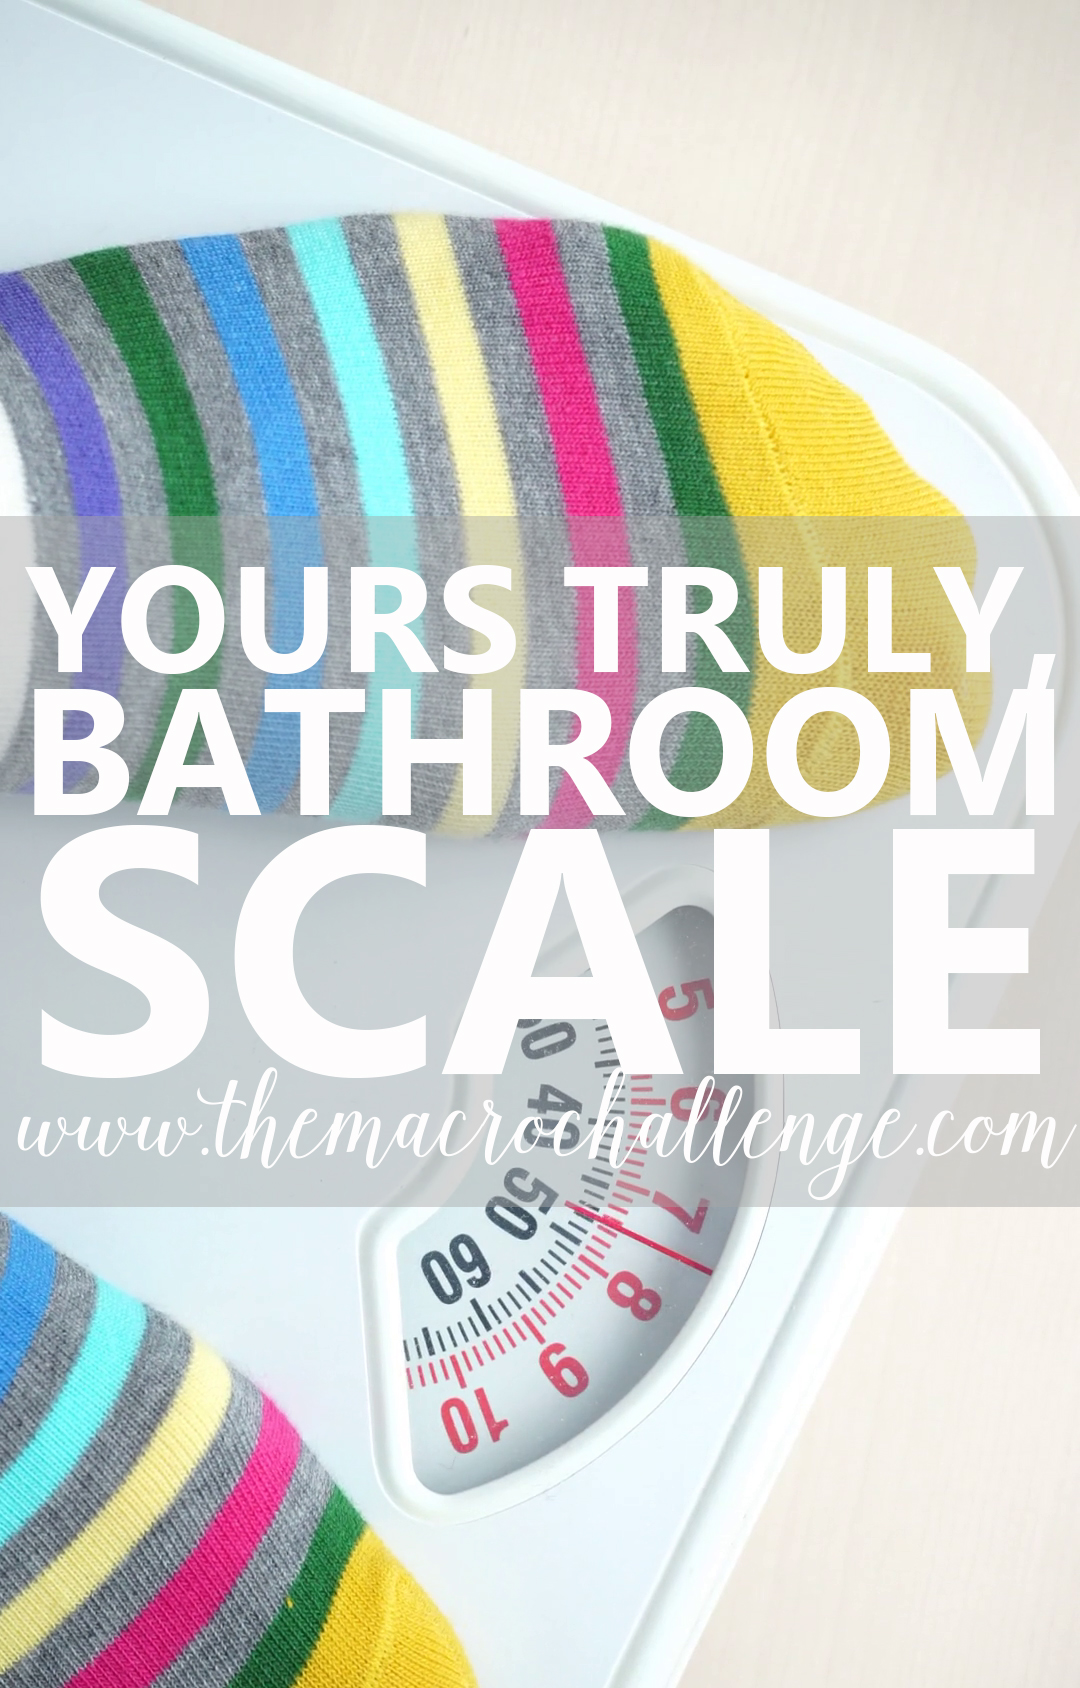 Yours Truly Bathroom Scale.jpg